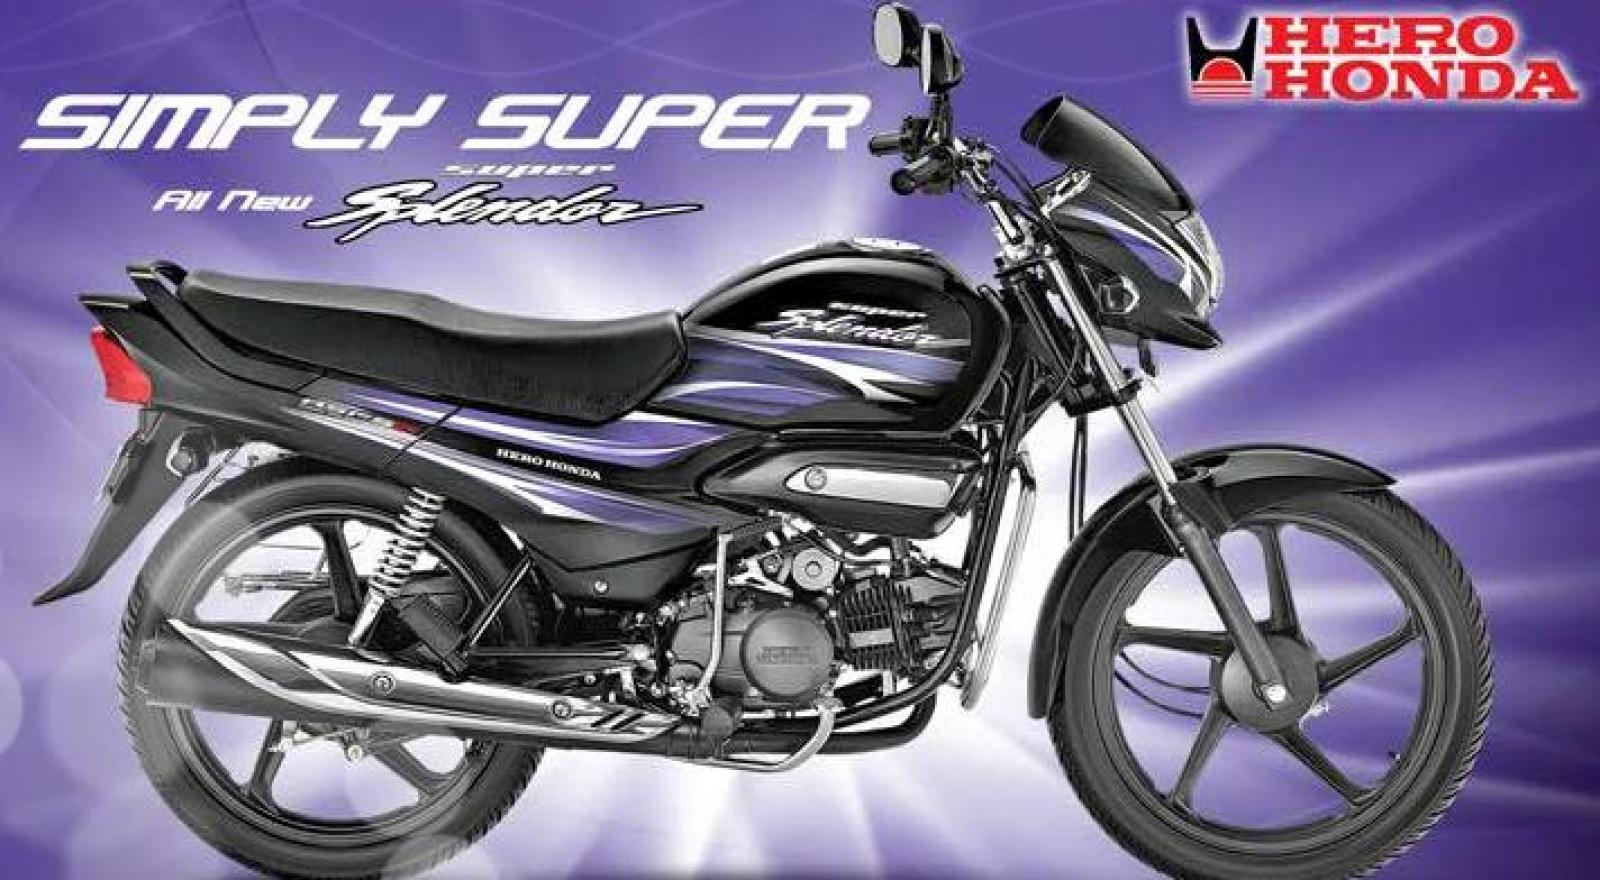 Hero Honda 125 Super Splendor 2008 images #74802